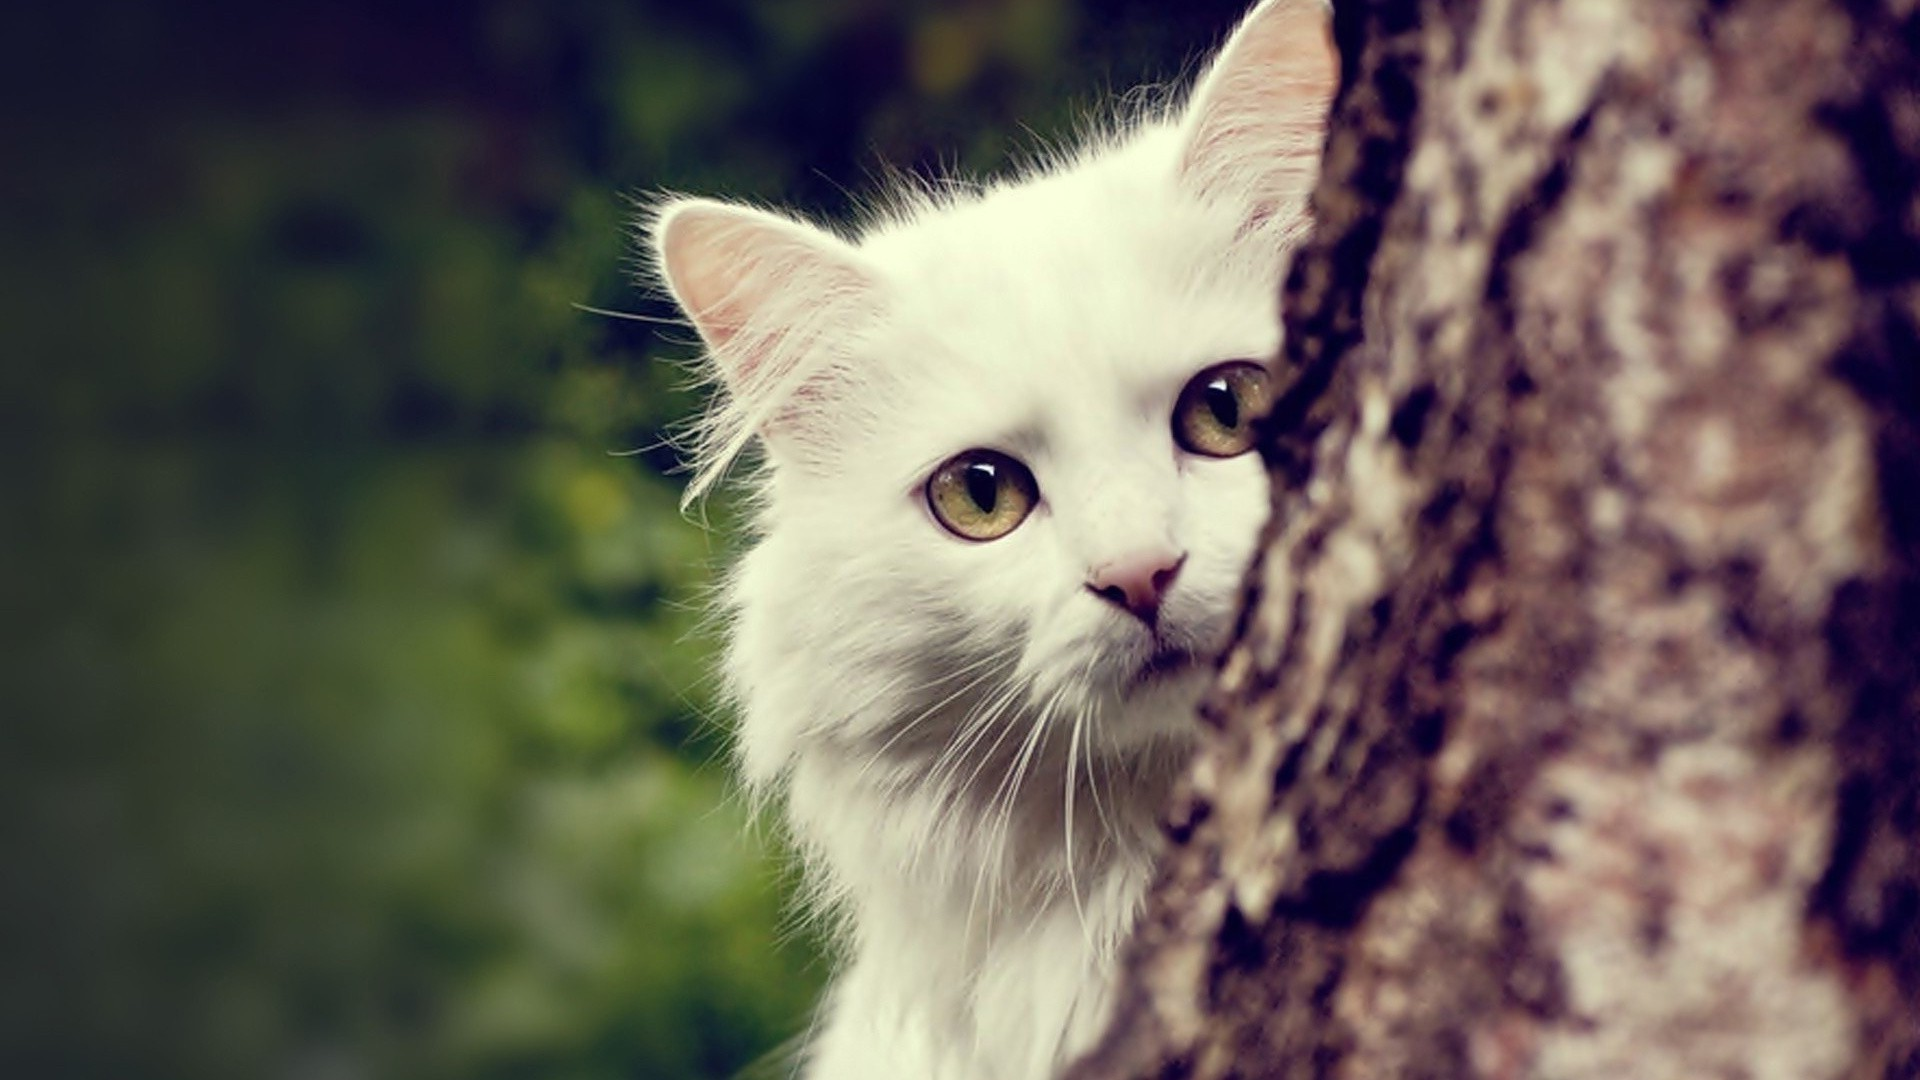 Res: 1920x1080,  animals nature cat maine coon wallpaper and background JPG 242 kB